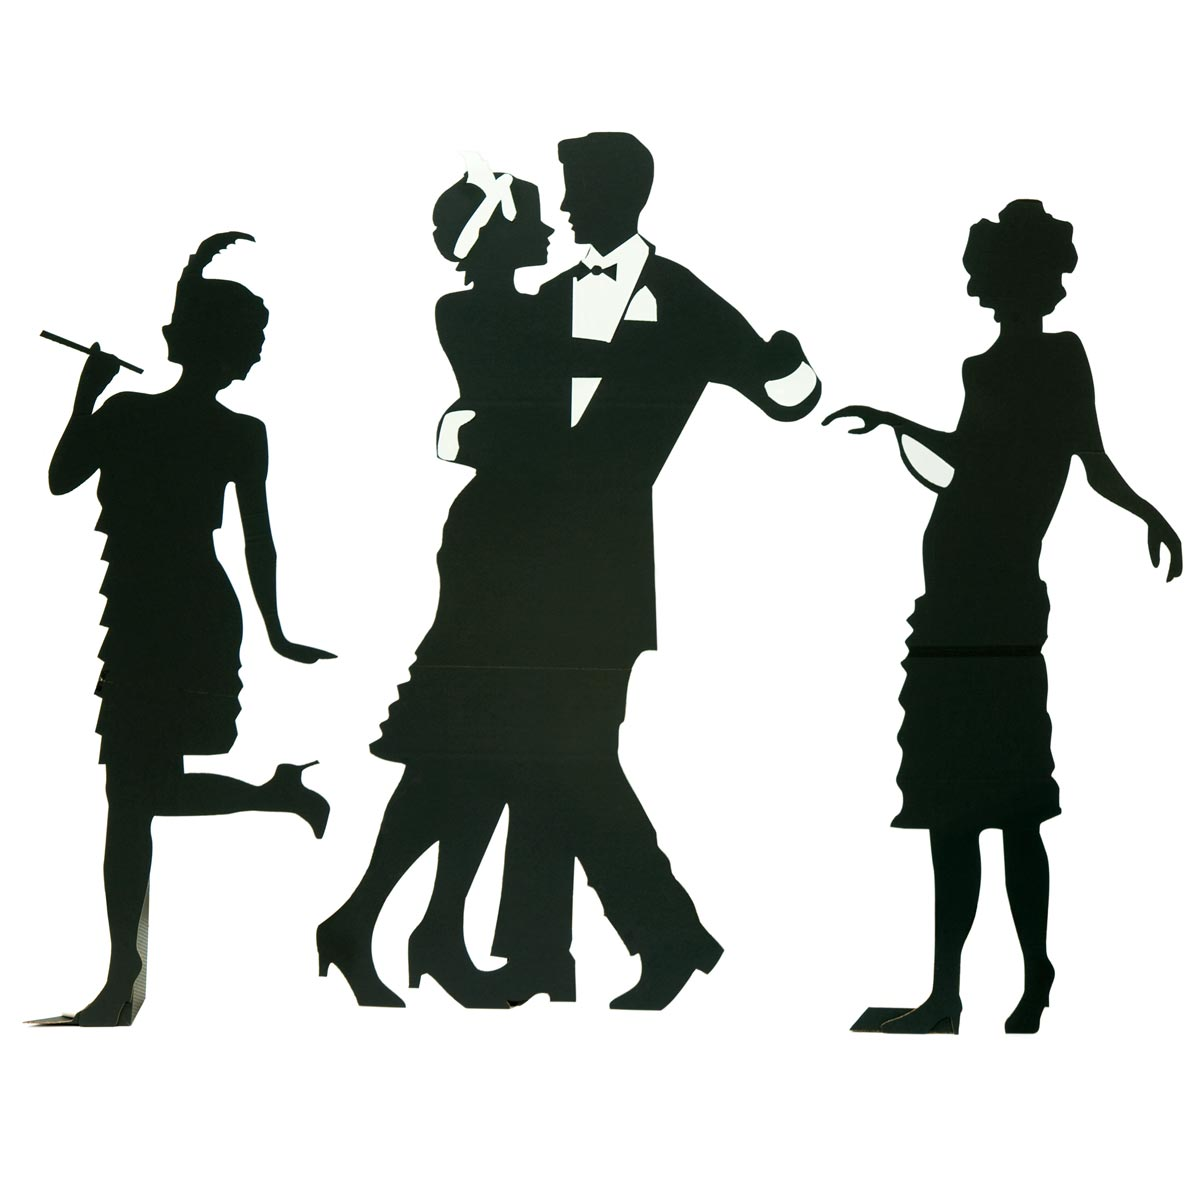 Roaring 20's party clipart.